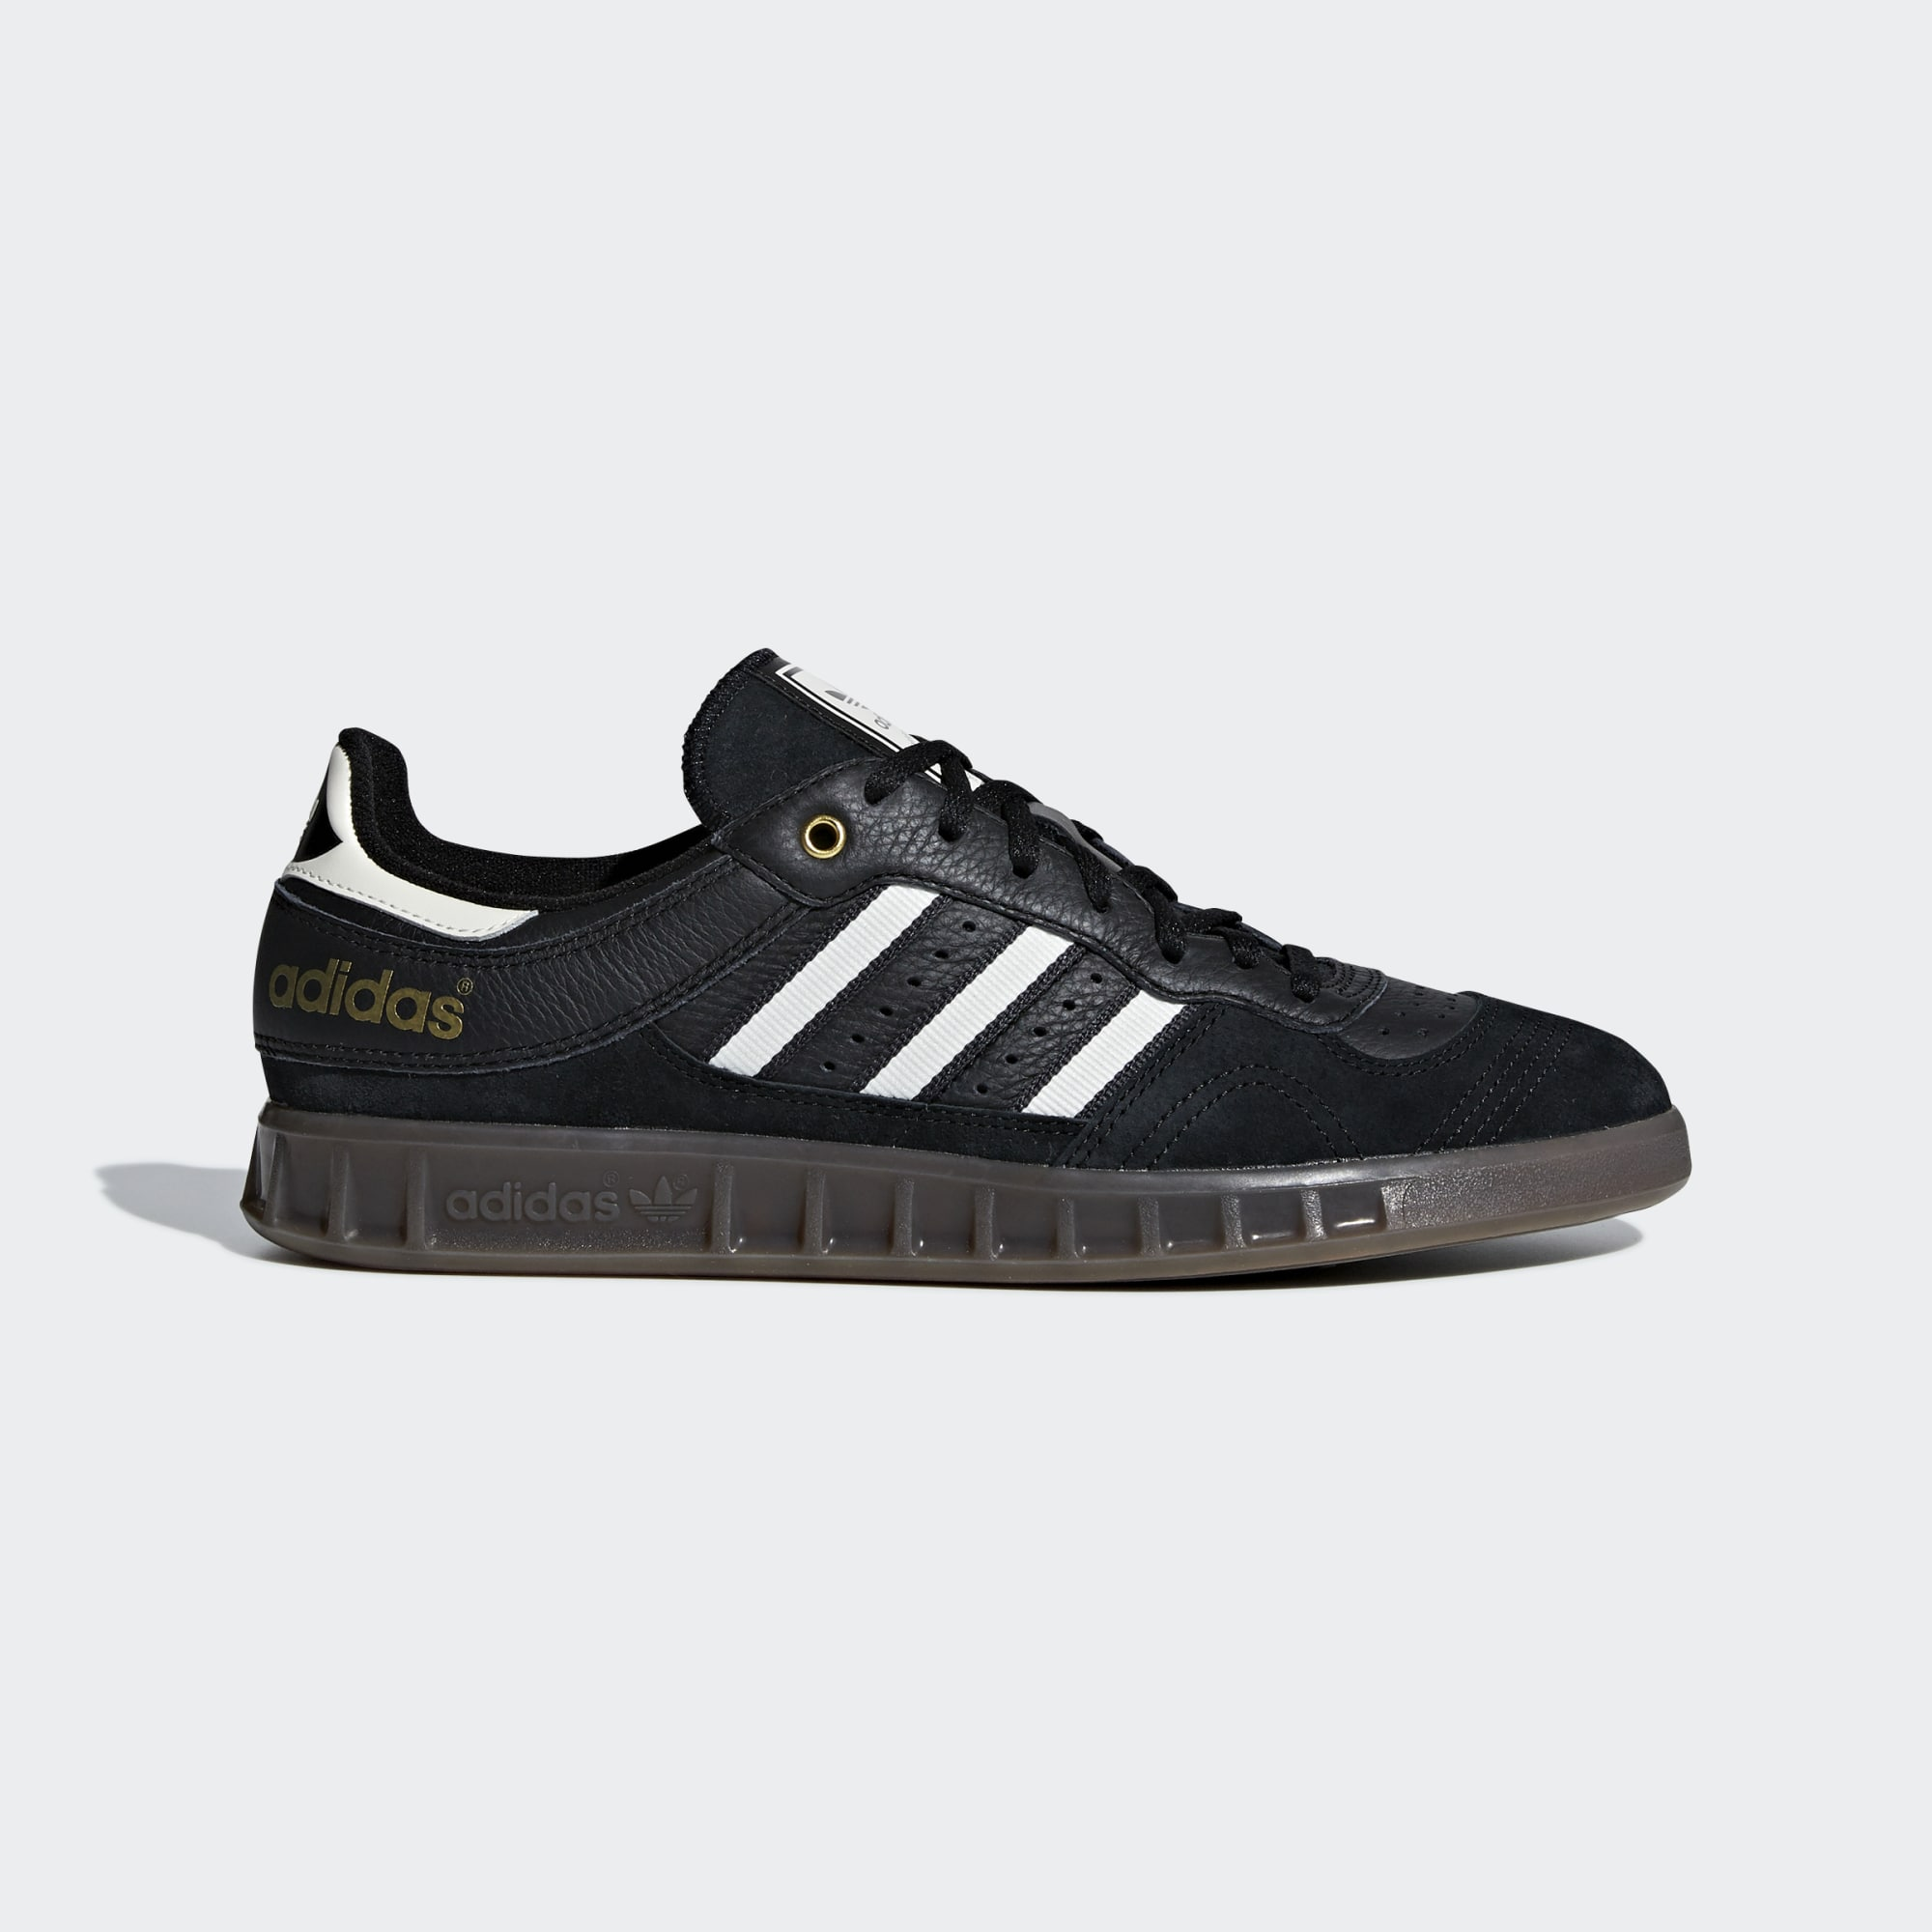 Adidas Handball Top Shoes - Core Black / Off White / Carbon